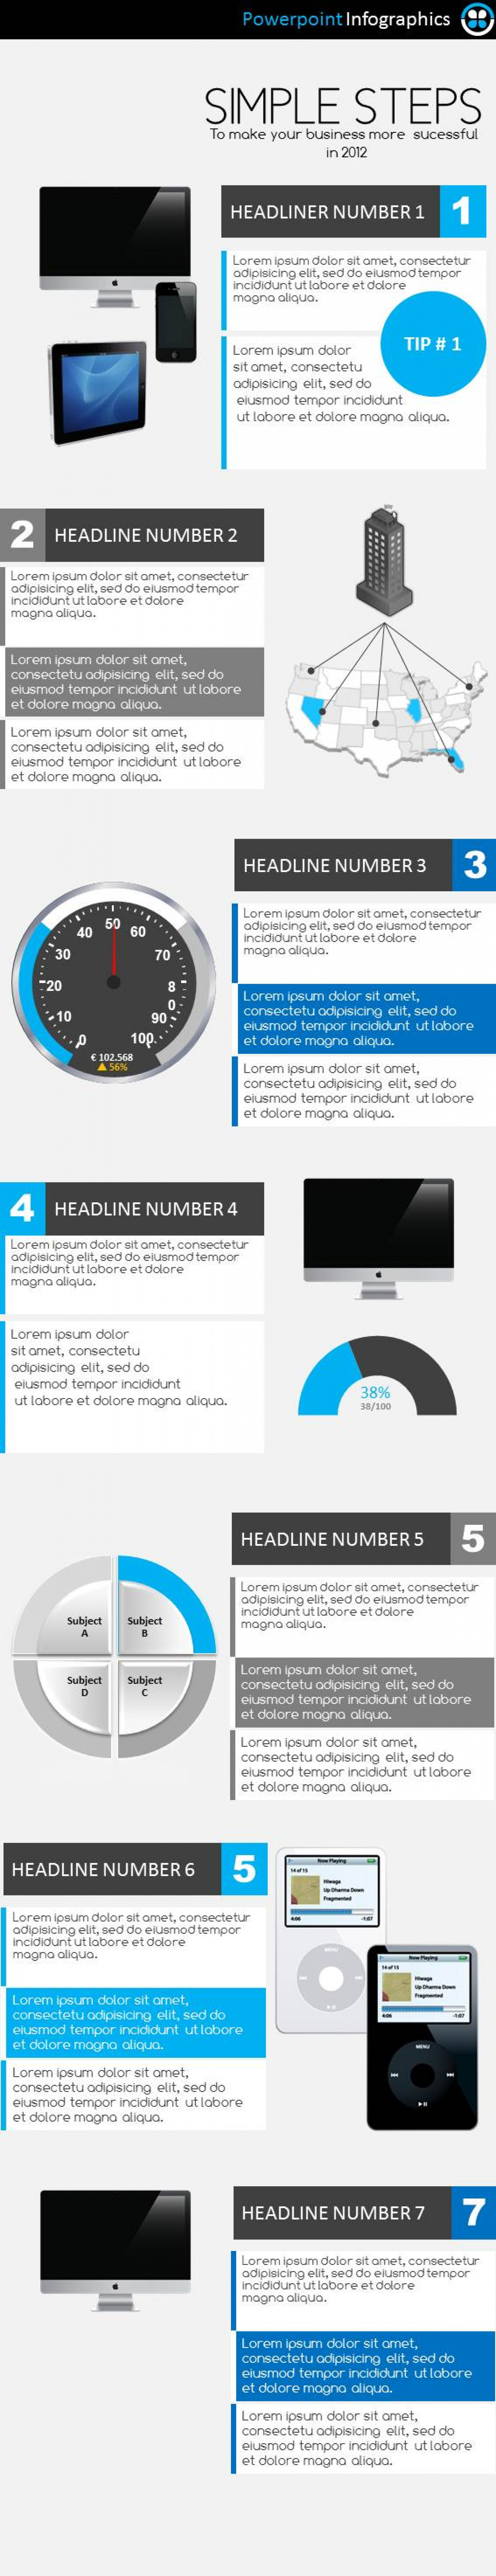 7 Steps infographic Infographic